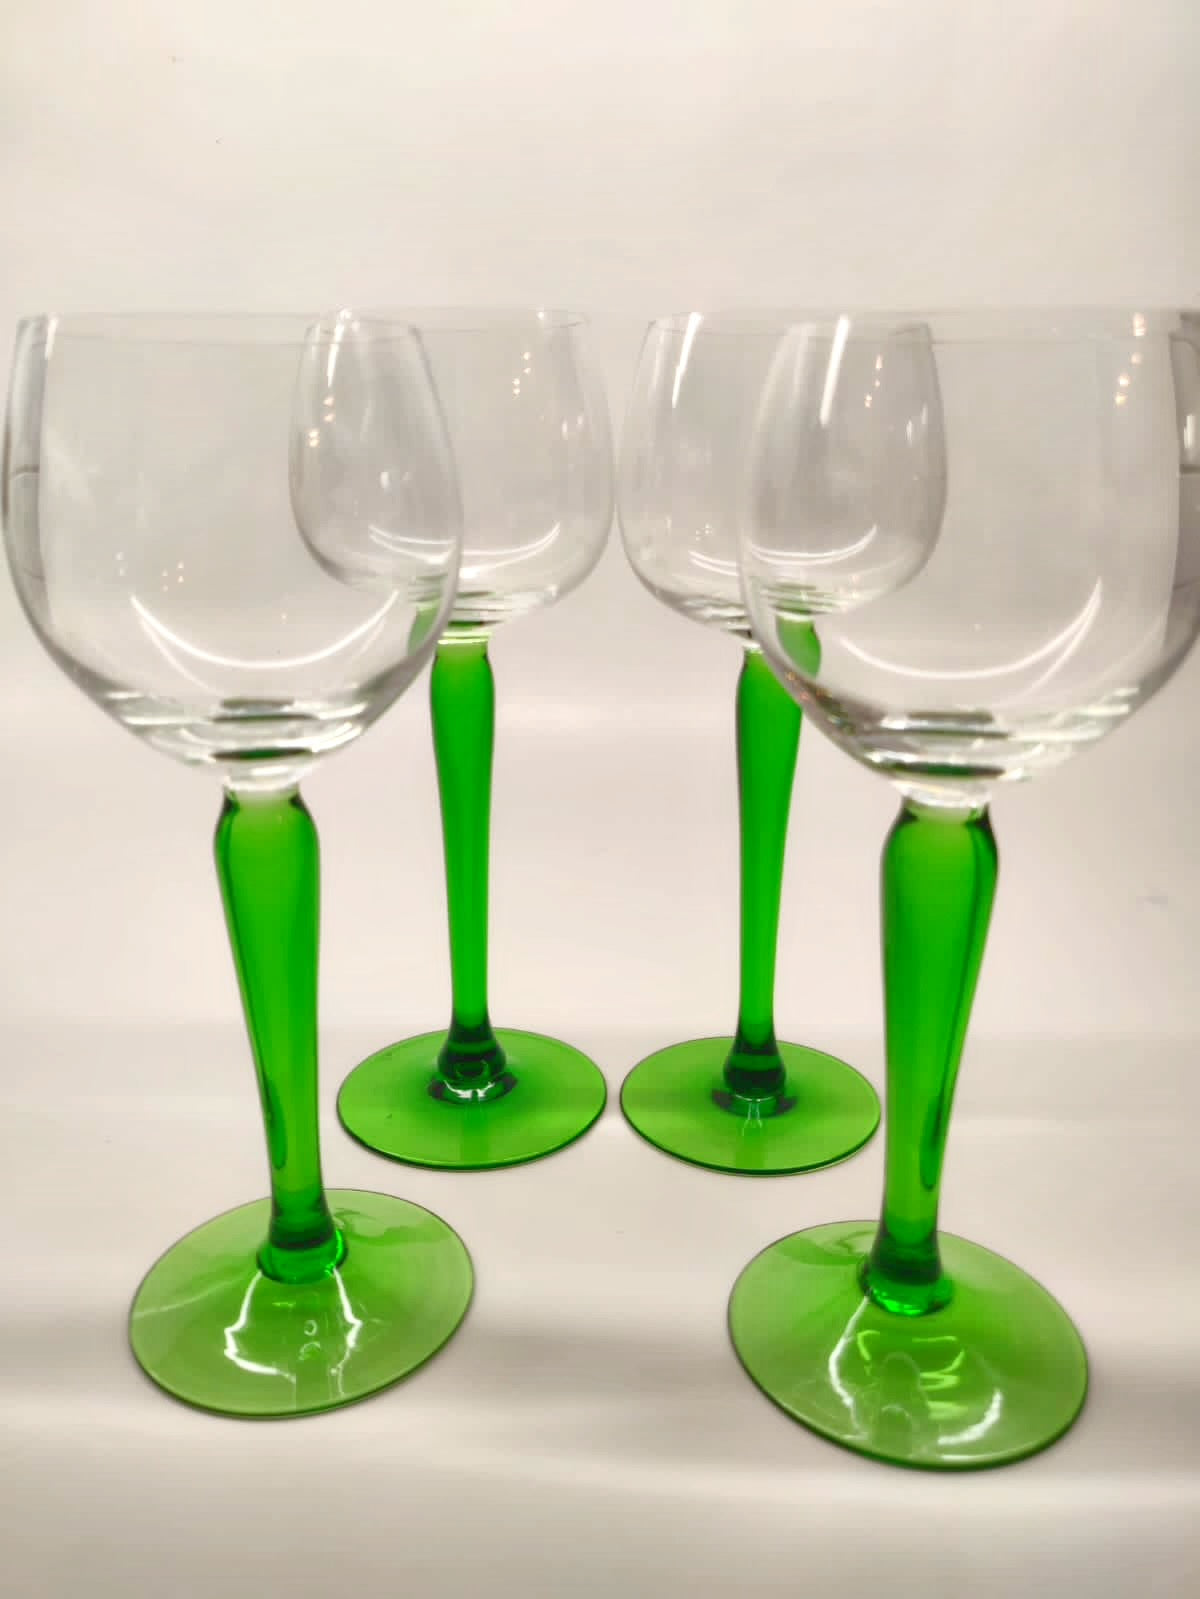 The Stormi Green Wine Glass